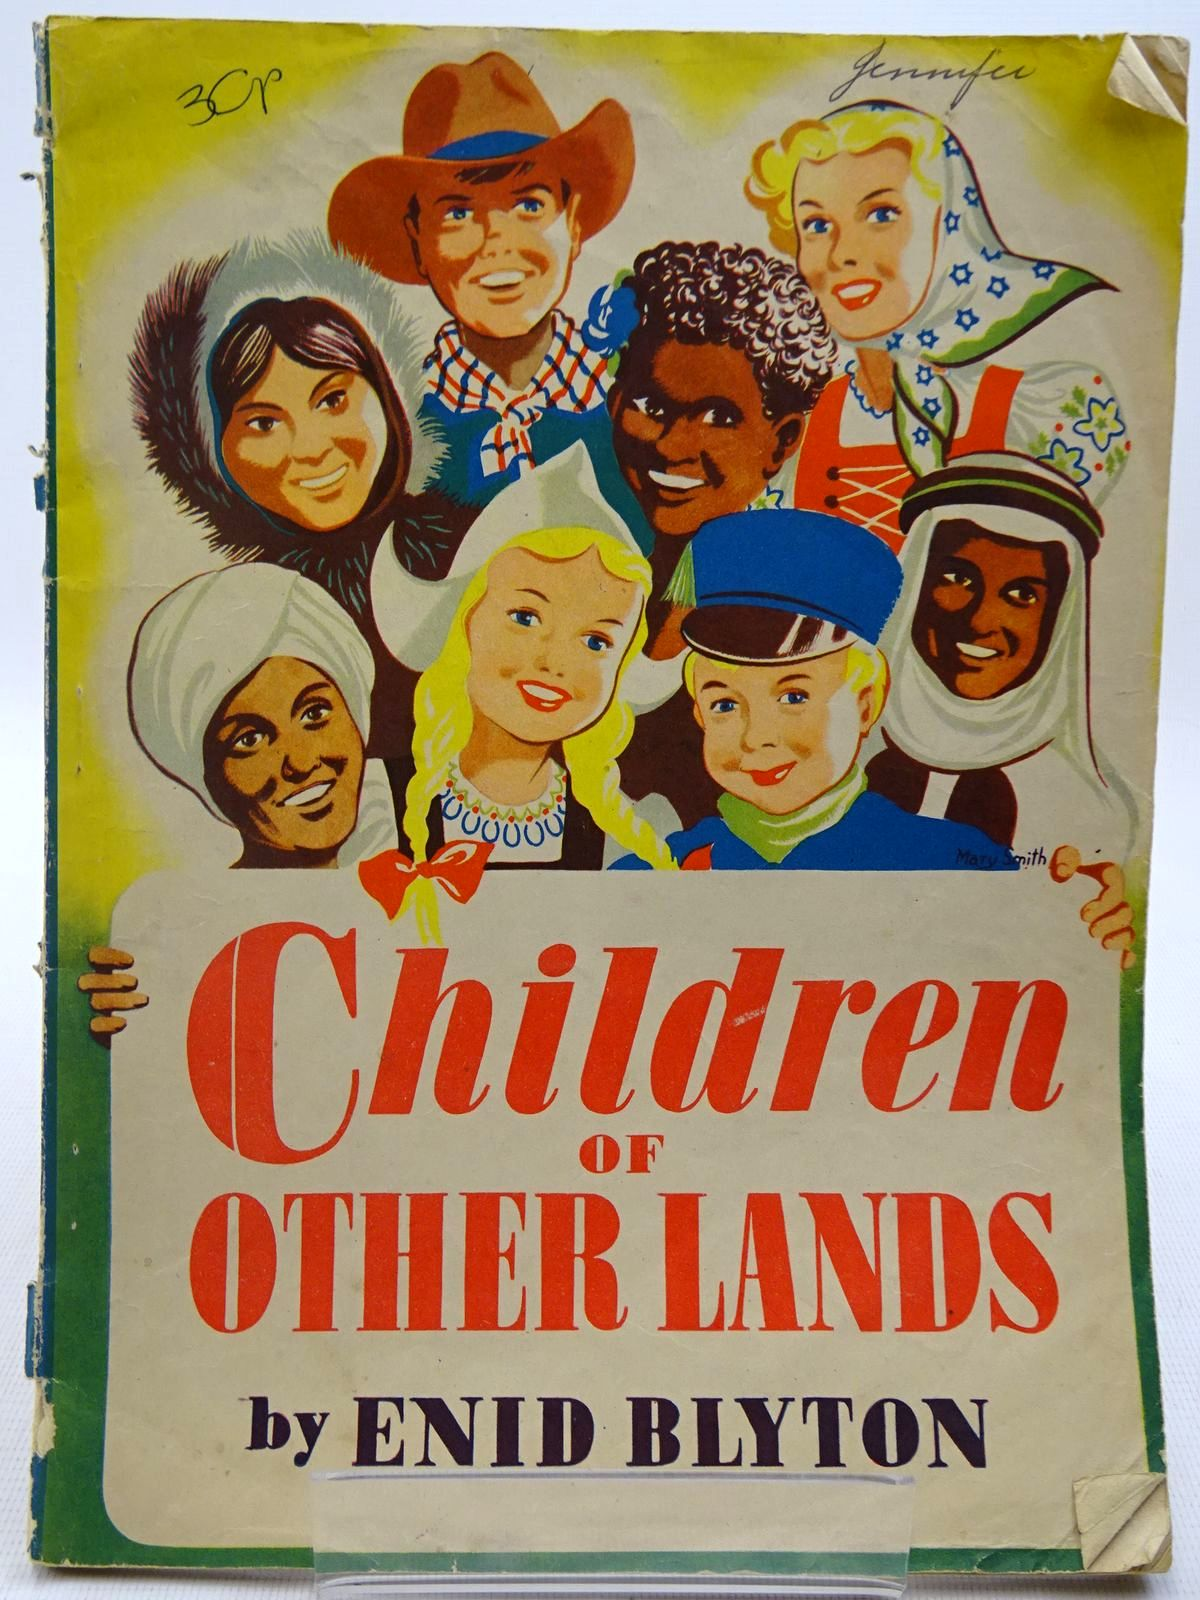 Photo of CHILDREN OF OTHER LANDS written by Blyton, Enid illustrated by Cuthill, Douglas published by J. Coker & Co. Ltd. (STOCK CODE: 2128868)  for sale by Stella & Rose's Books